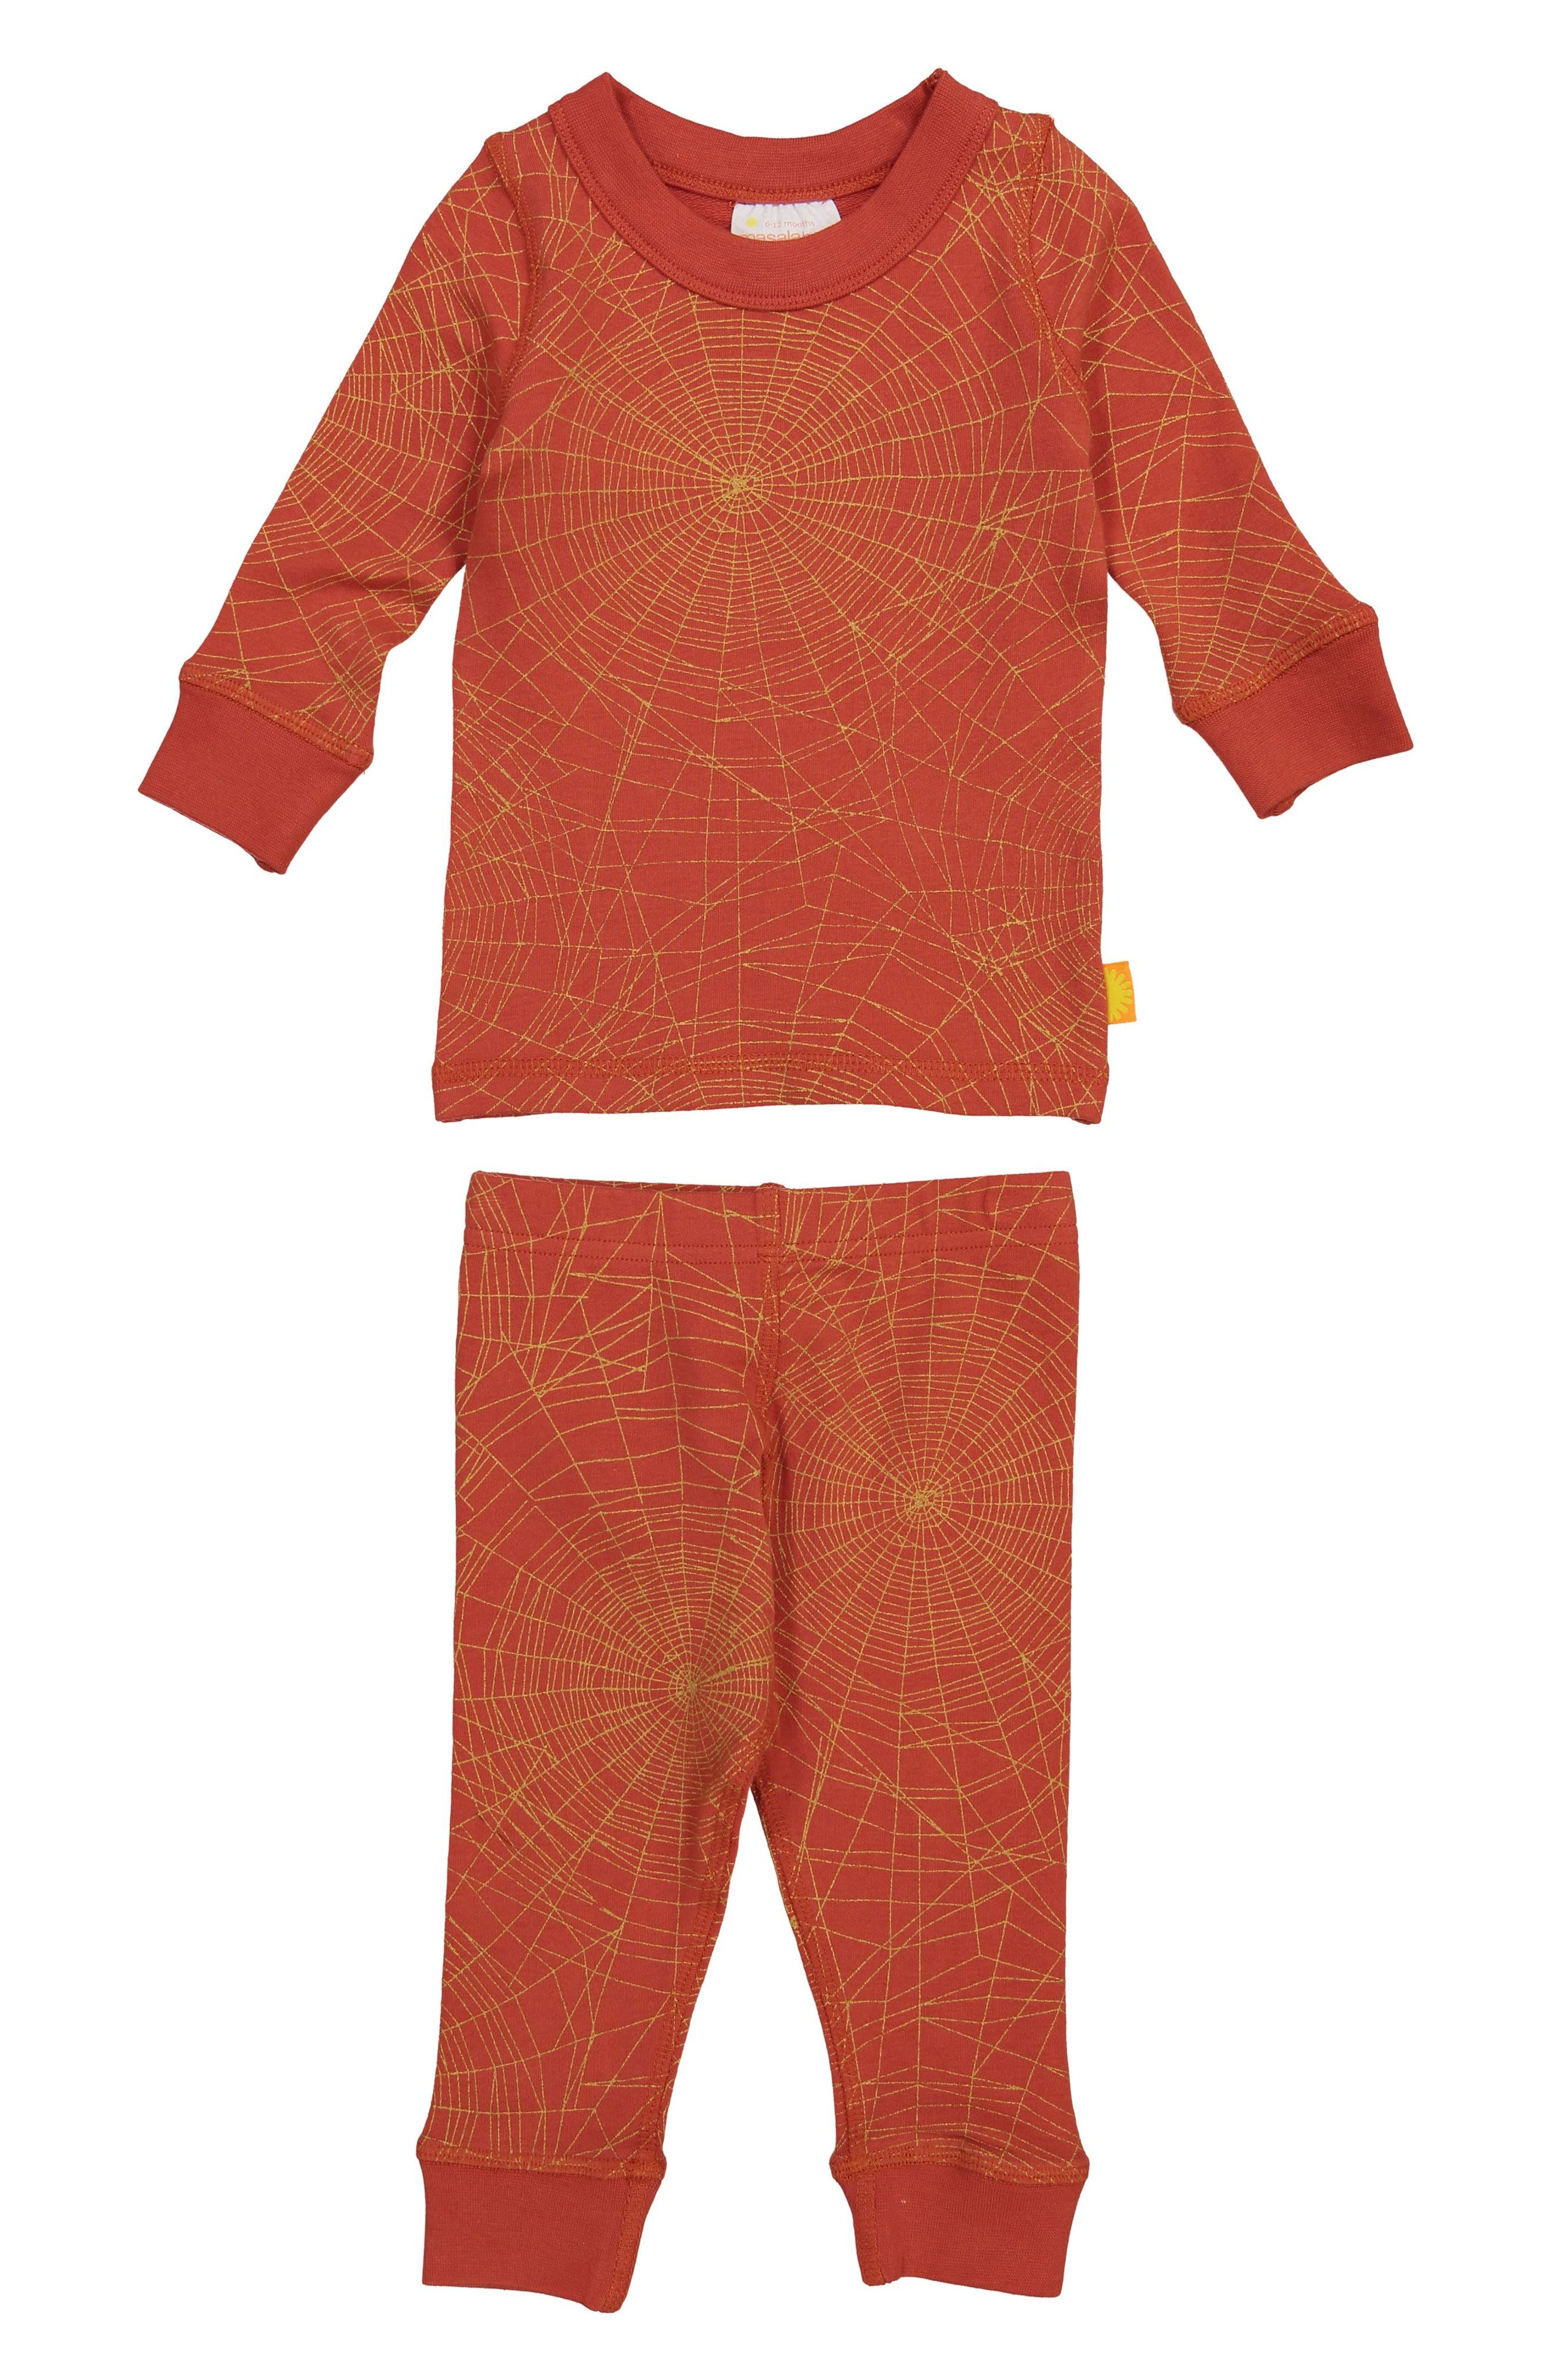 Golden Web Organic Cotton Fitted Two-Piece Pajamas,                             Main thumbnail 1, color,                             600